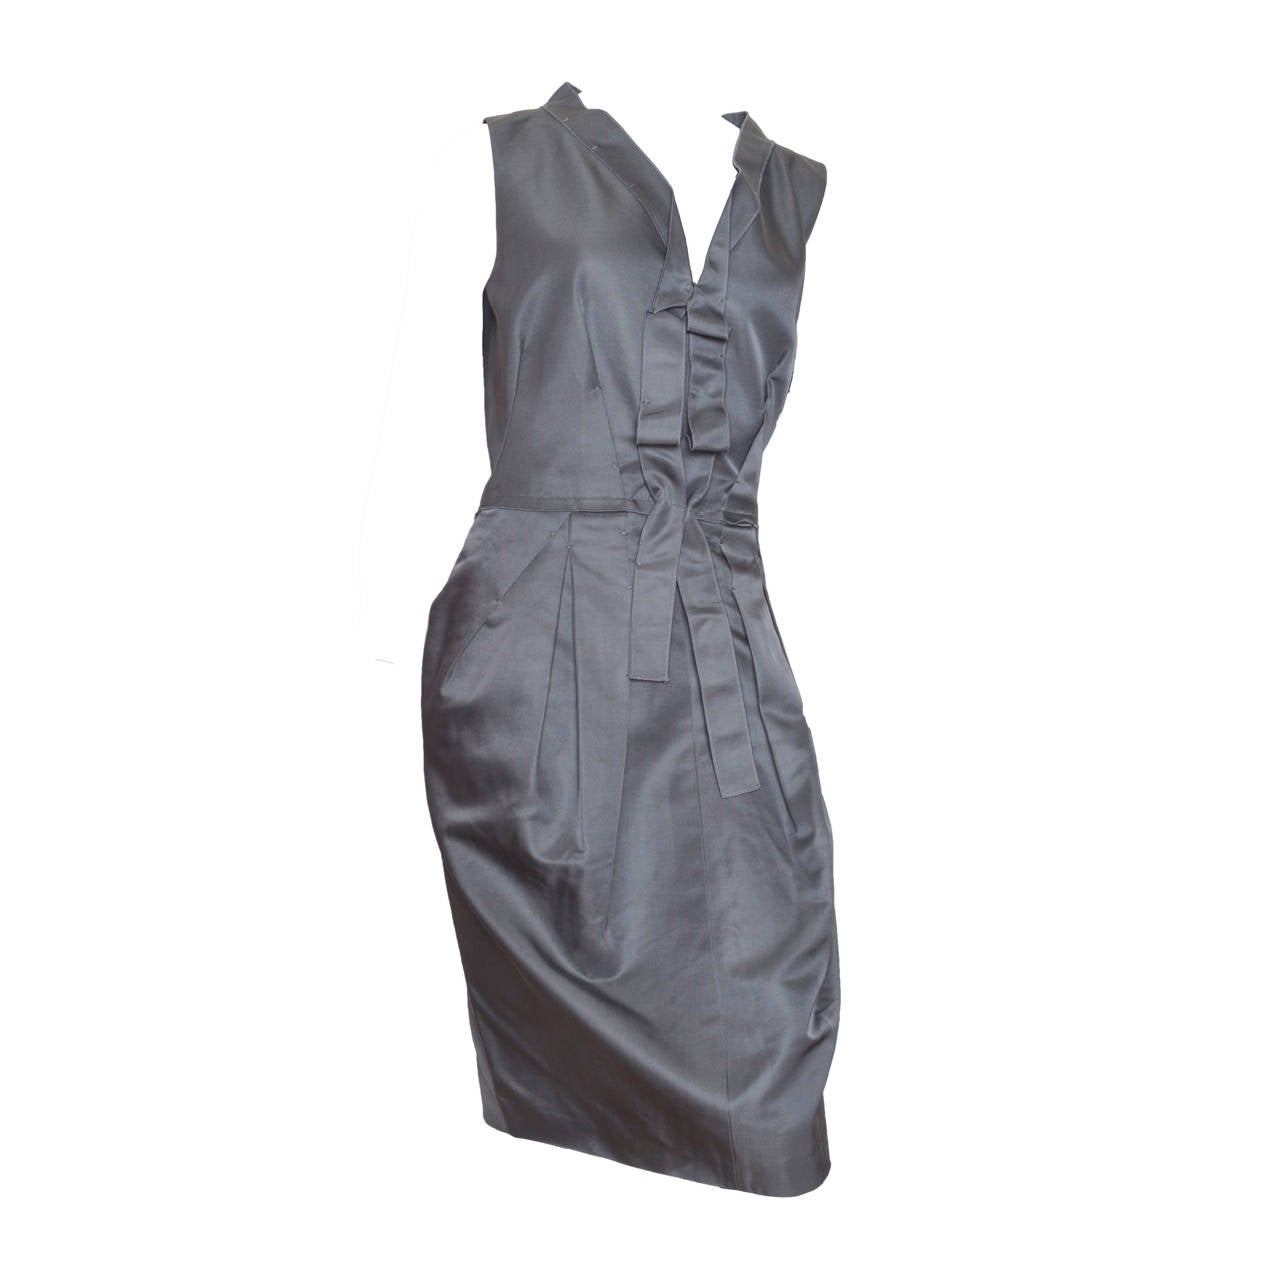 Gianfranco Ferre Gunmetal Grey Sateen Dress